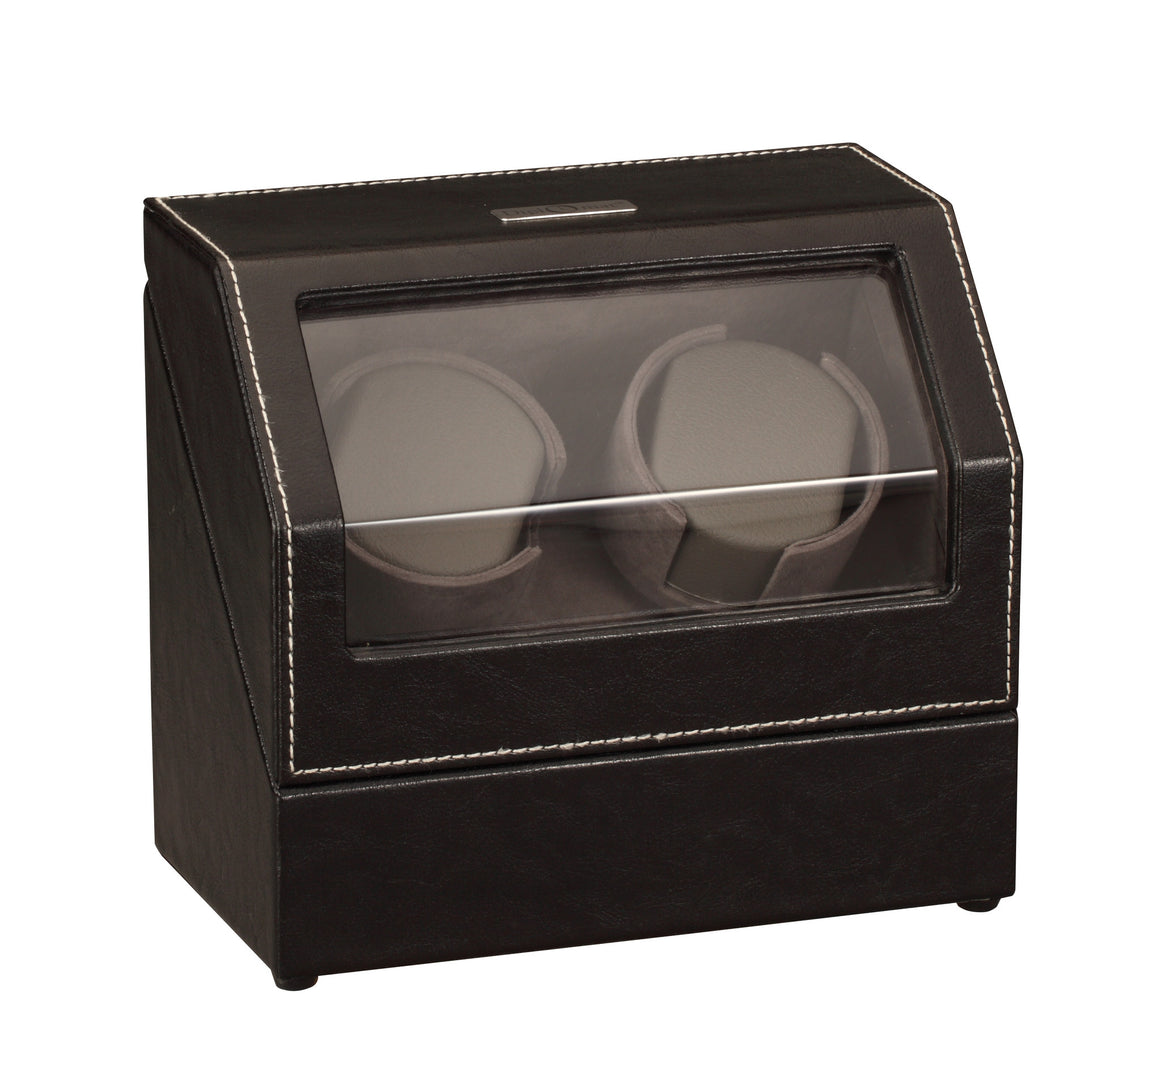 Diplomat Black Leather Double Watch Winder with Stitch Trim - Watch Box Co. - 2